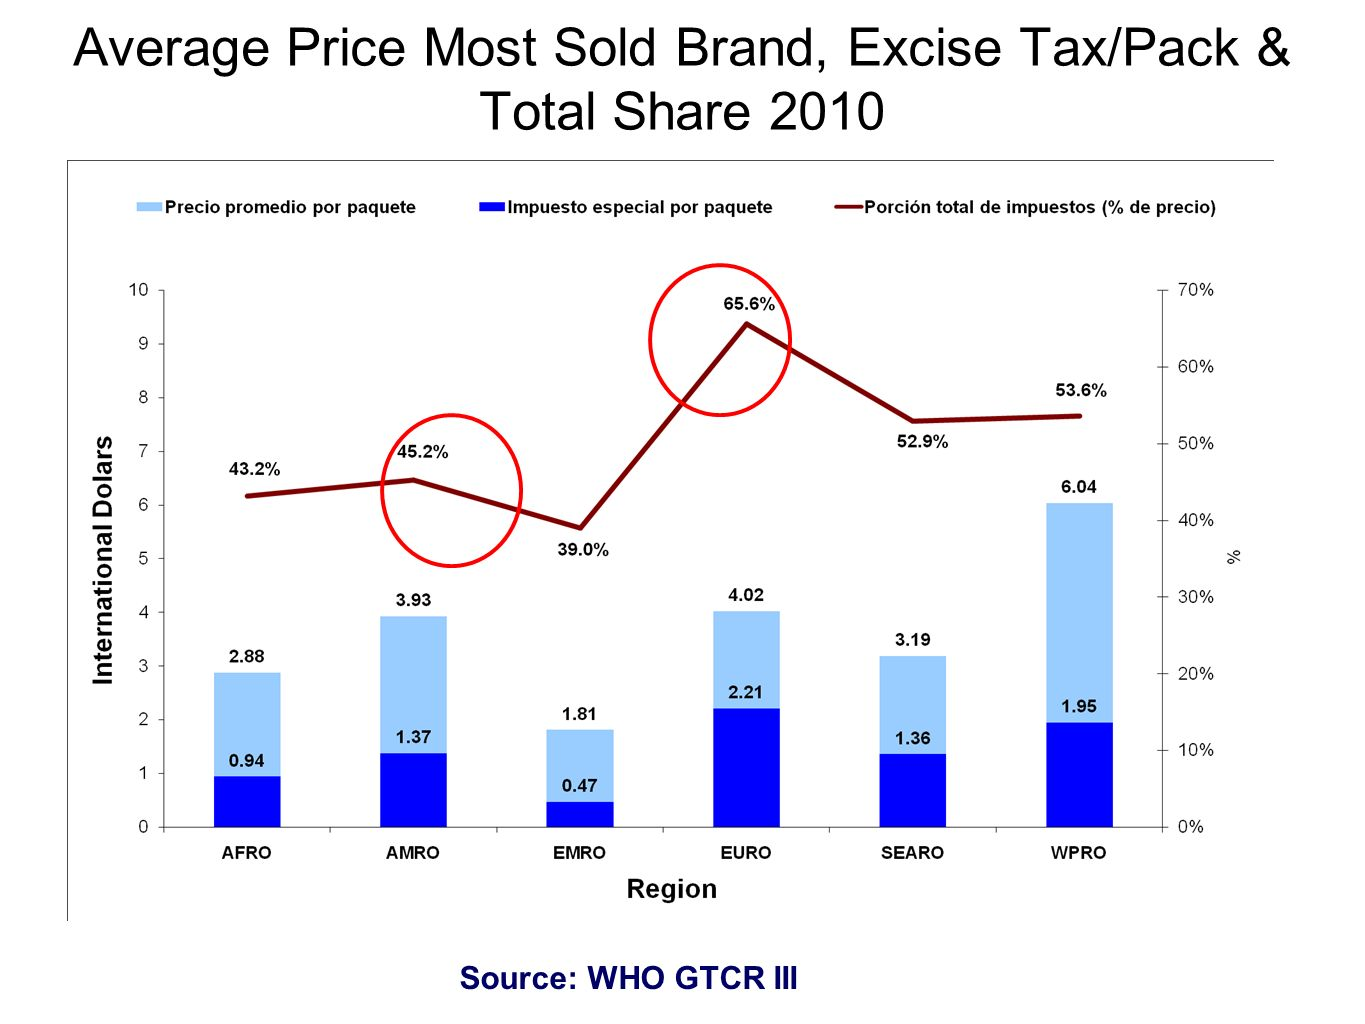 Average Price Most Sold Brand, Excise Tax/Pack & Total Share 2010